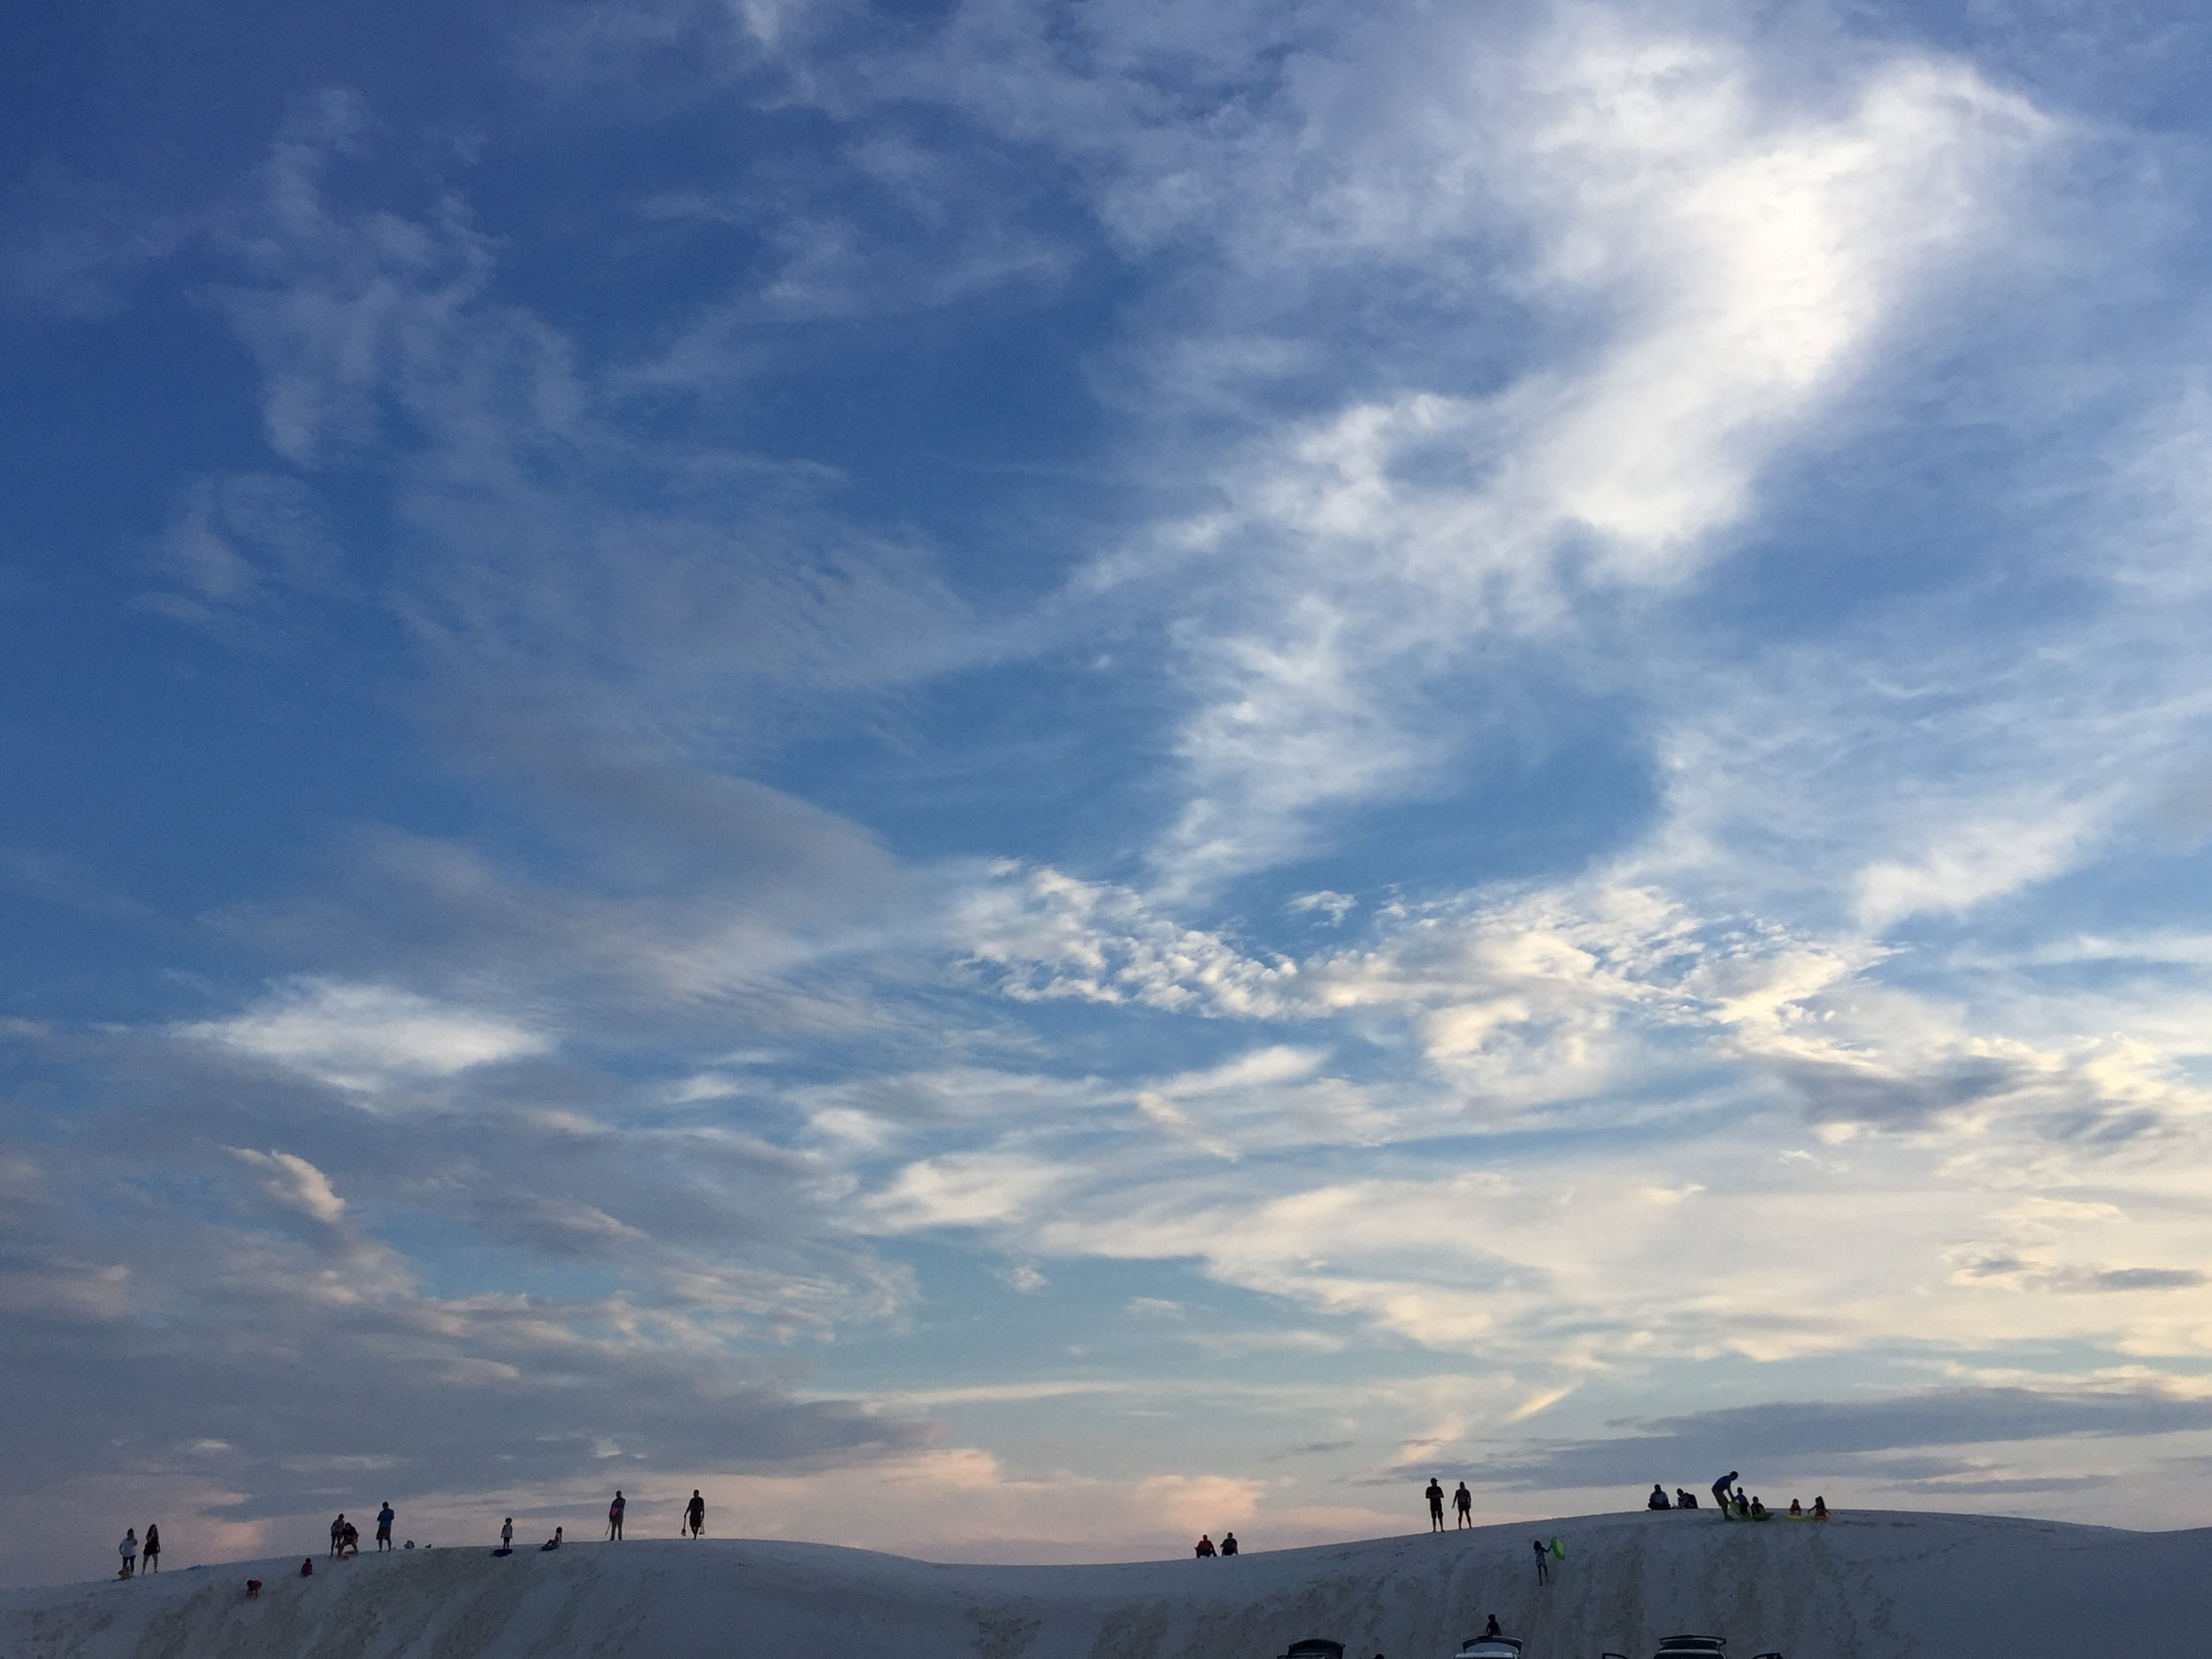 4. White Sands National Monument, New Mexico